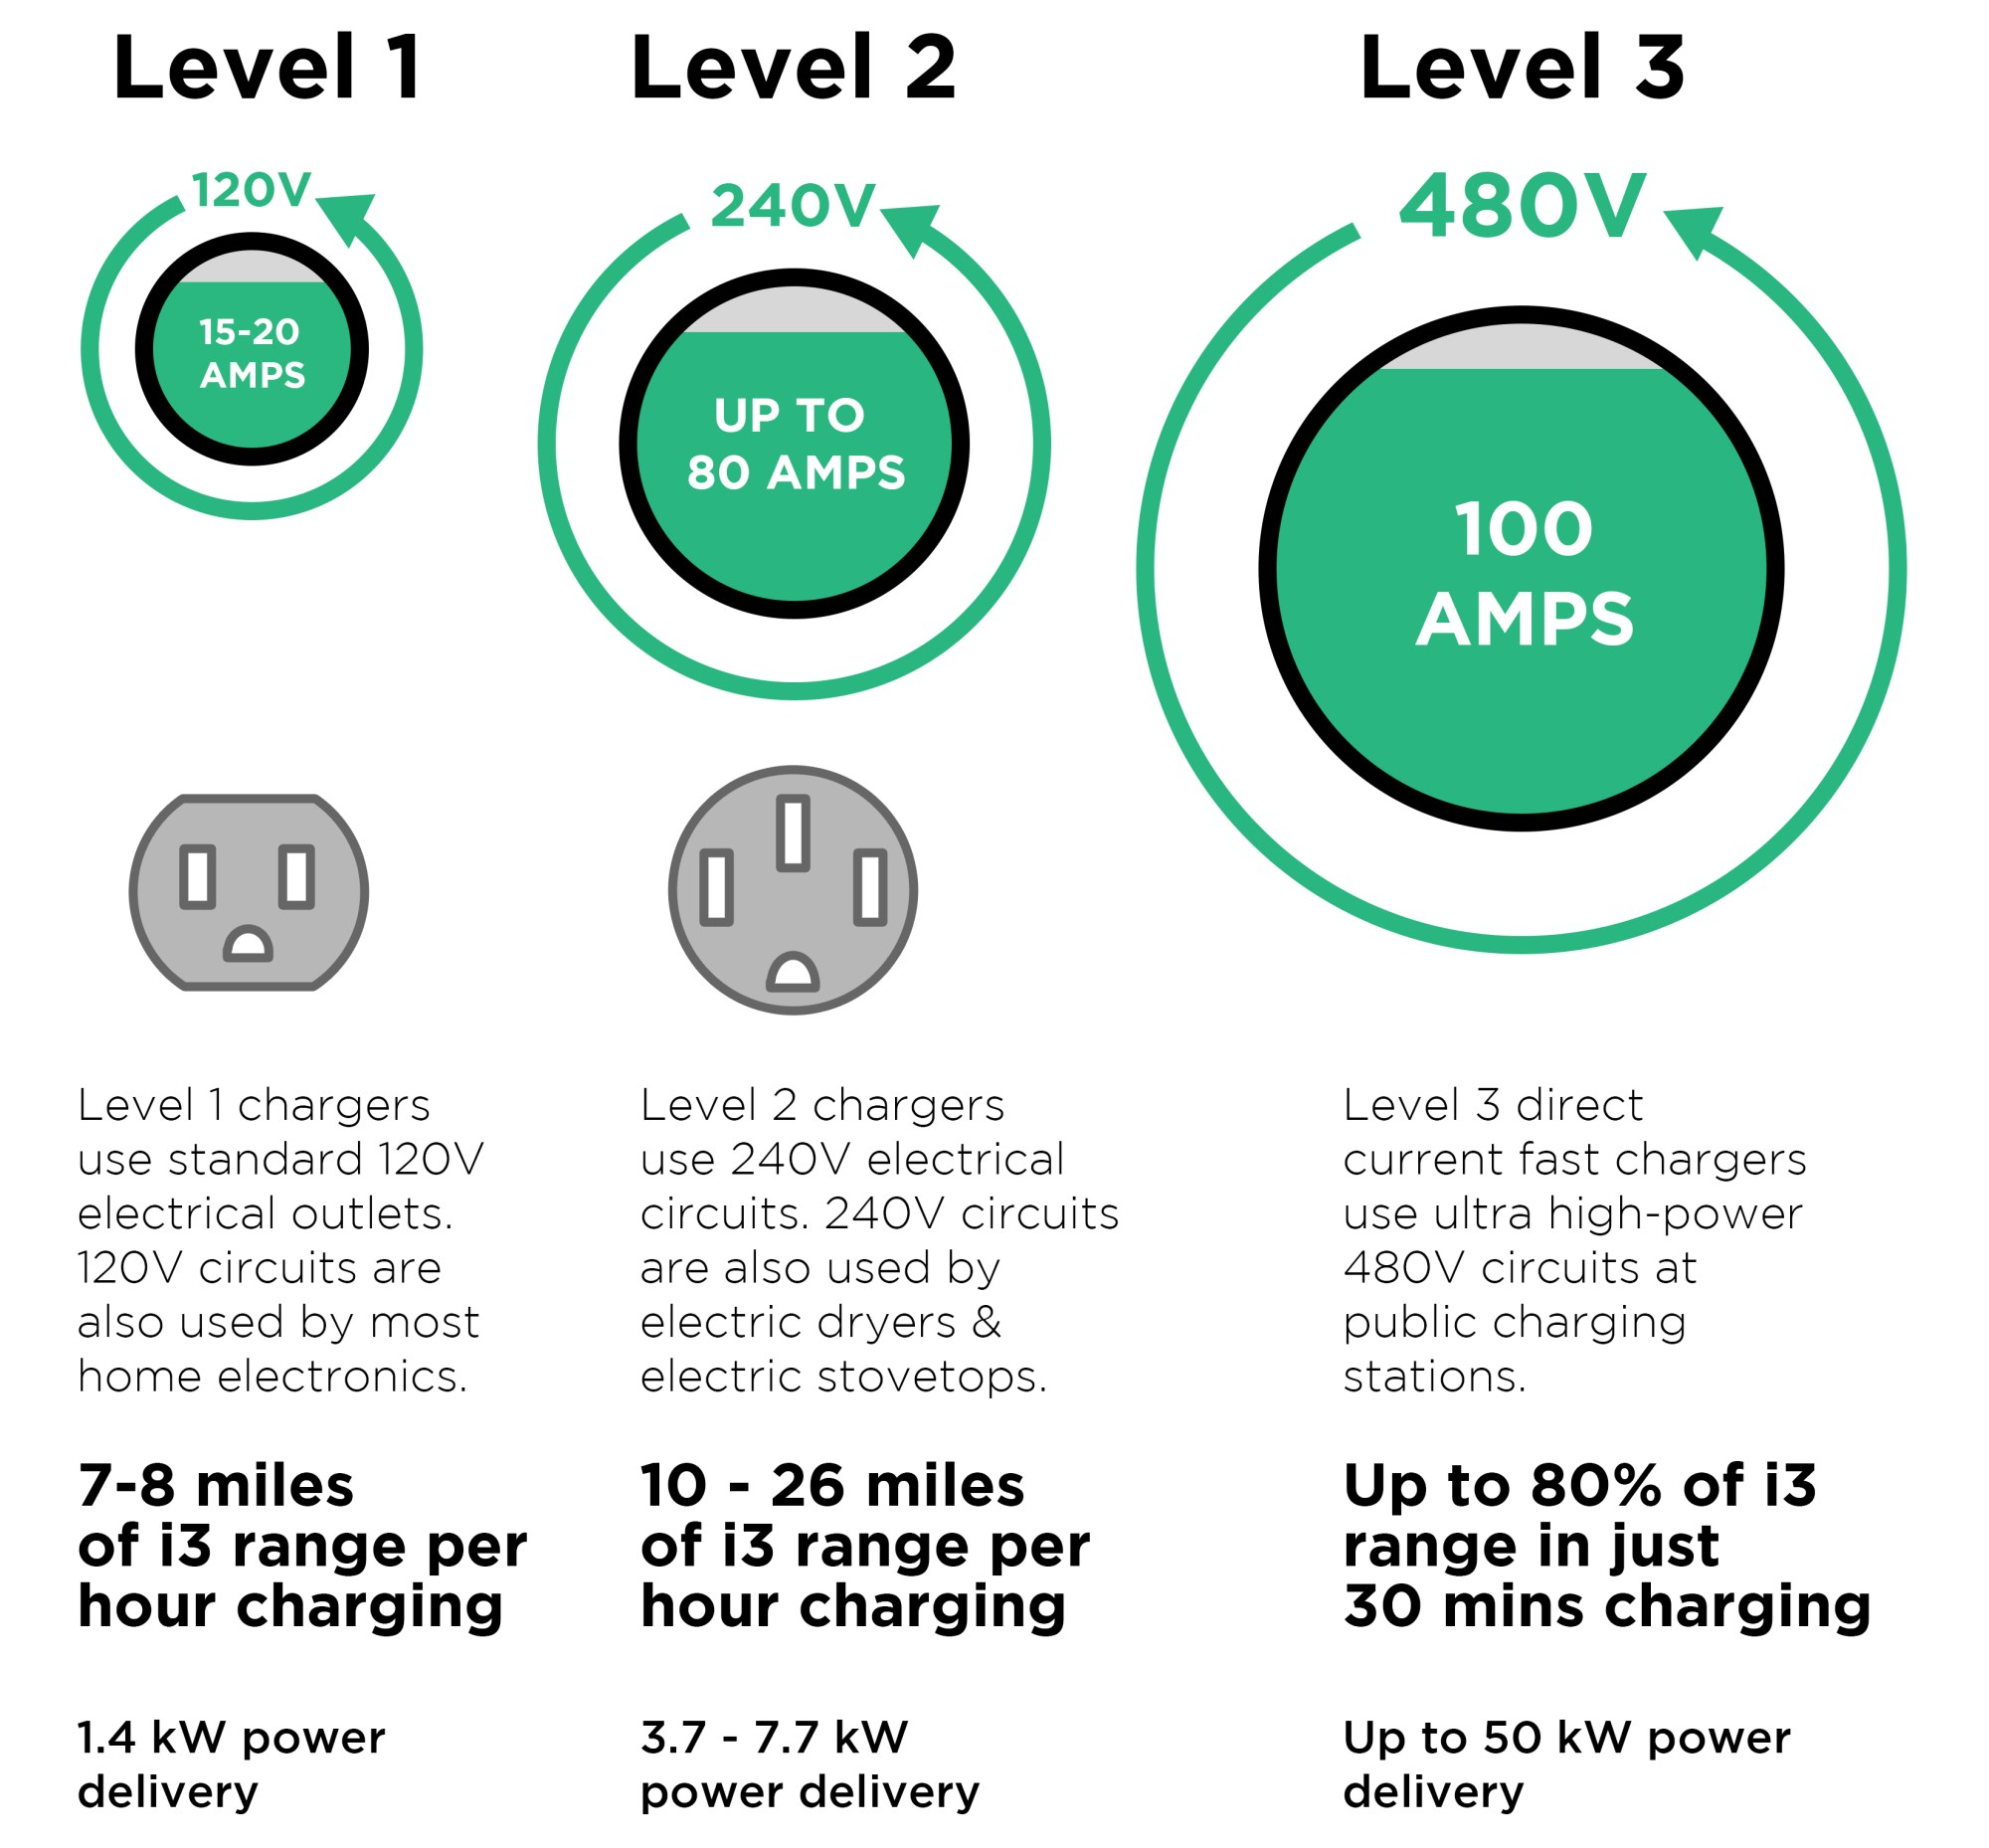 hight resolution of level 1 2 3 ev charger comparison power time hours speed voltage amps current visual diagram